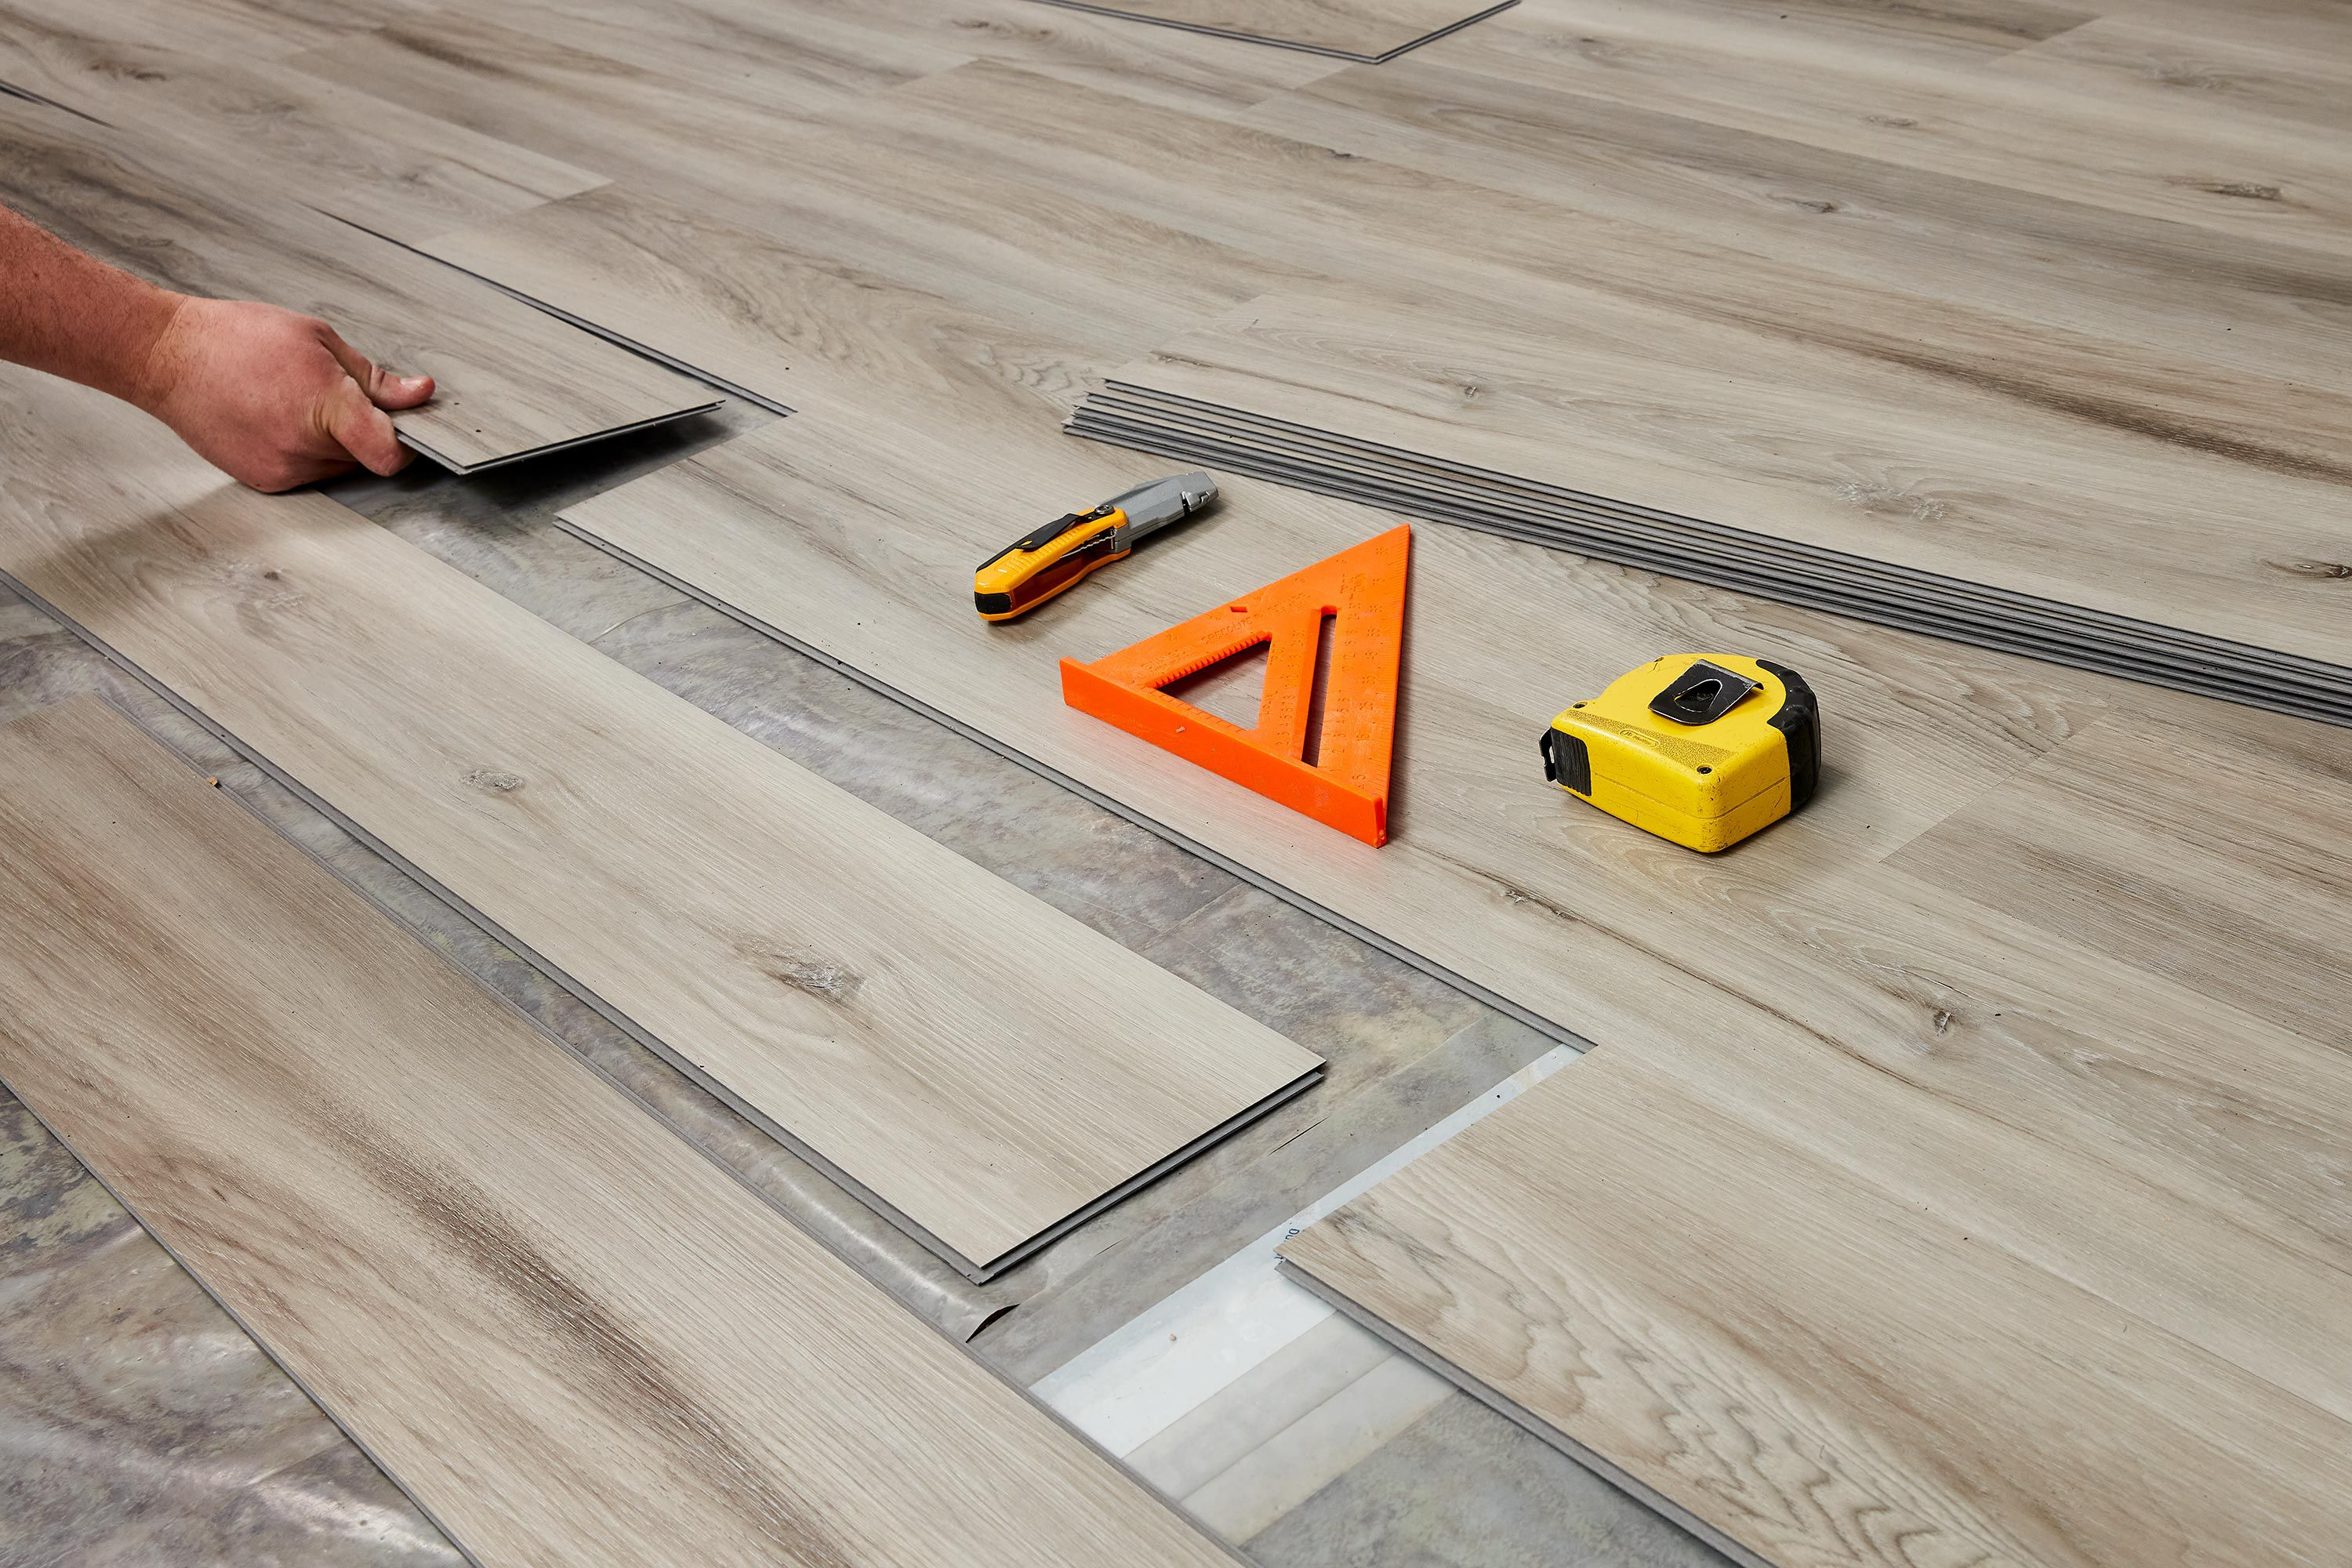 Floating Floors Pros and Cons